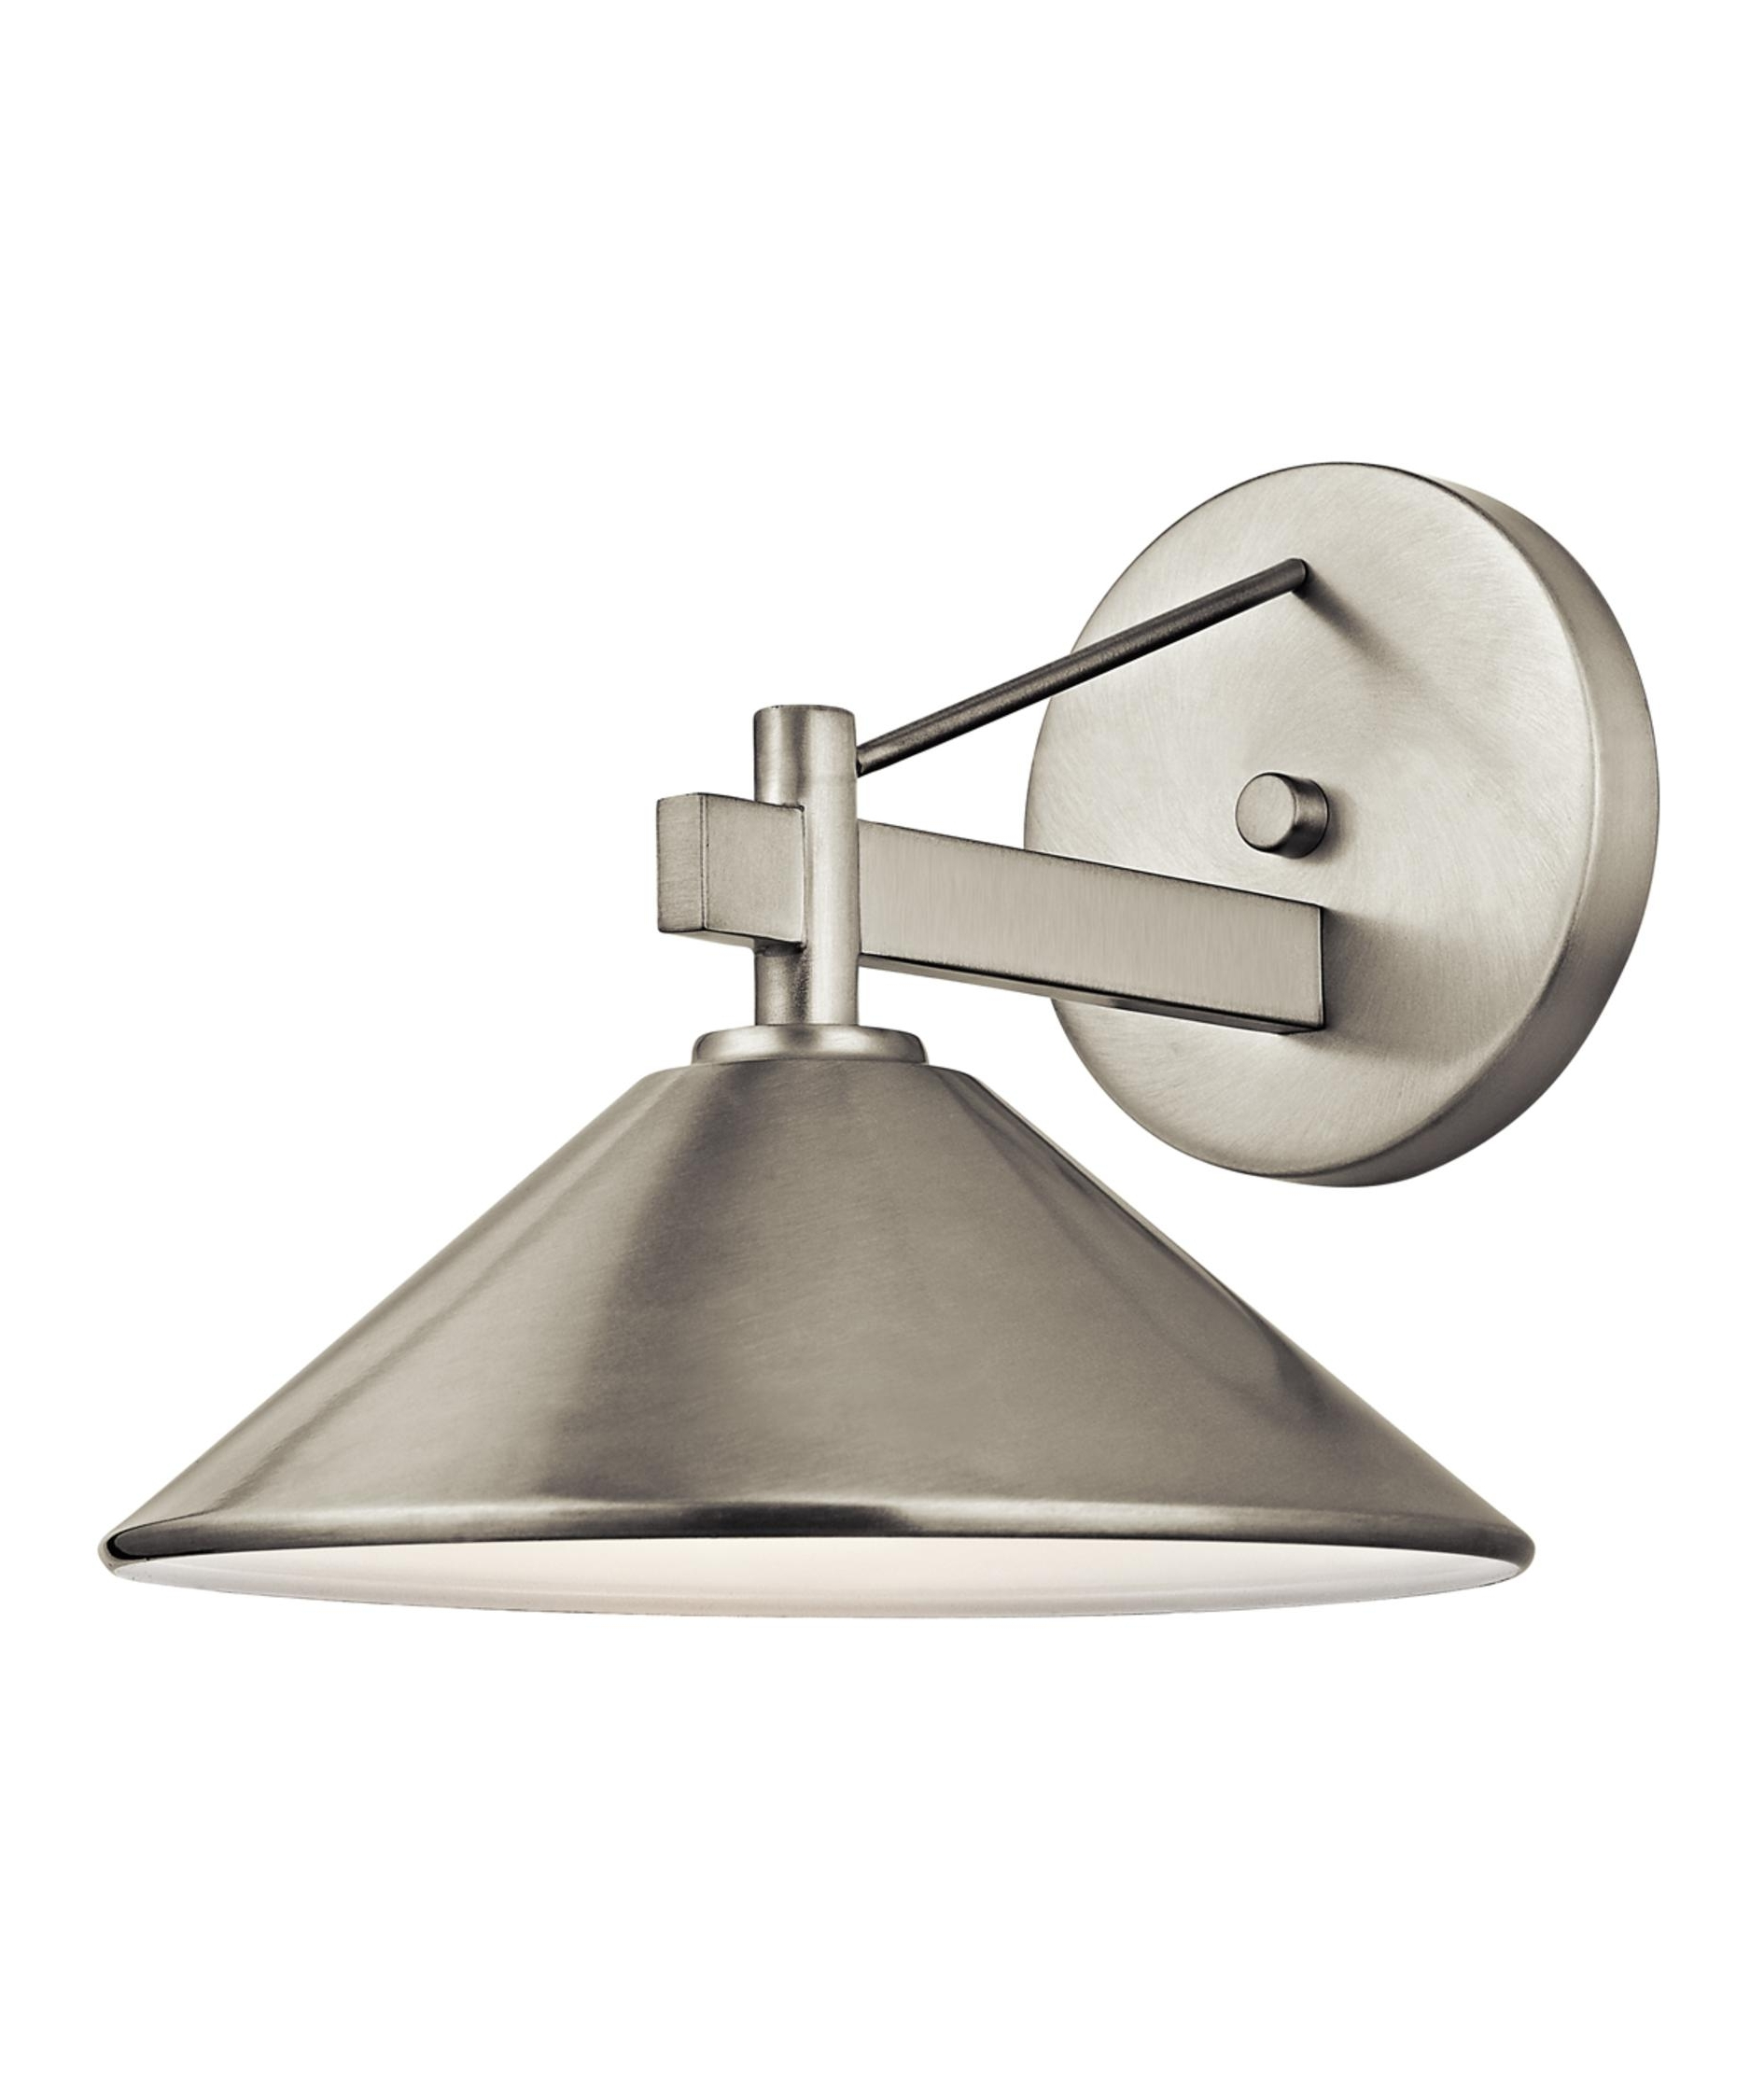 Kichler 49060 Ripley 10 Inch Wide 1 Light Outdoor Wall Light With Regard To Most Current Brushed Nickel Outdoor Wall Lighting (View 12 of 20)